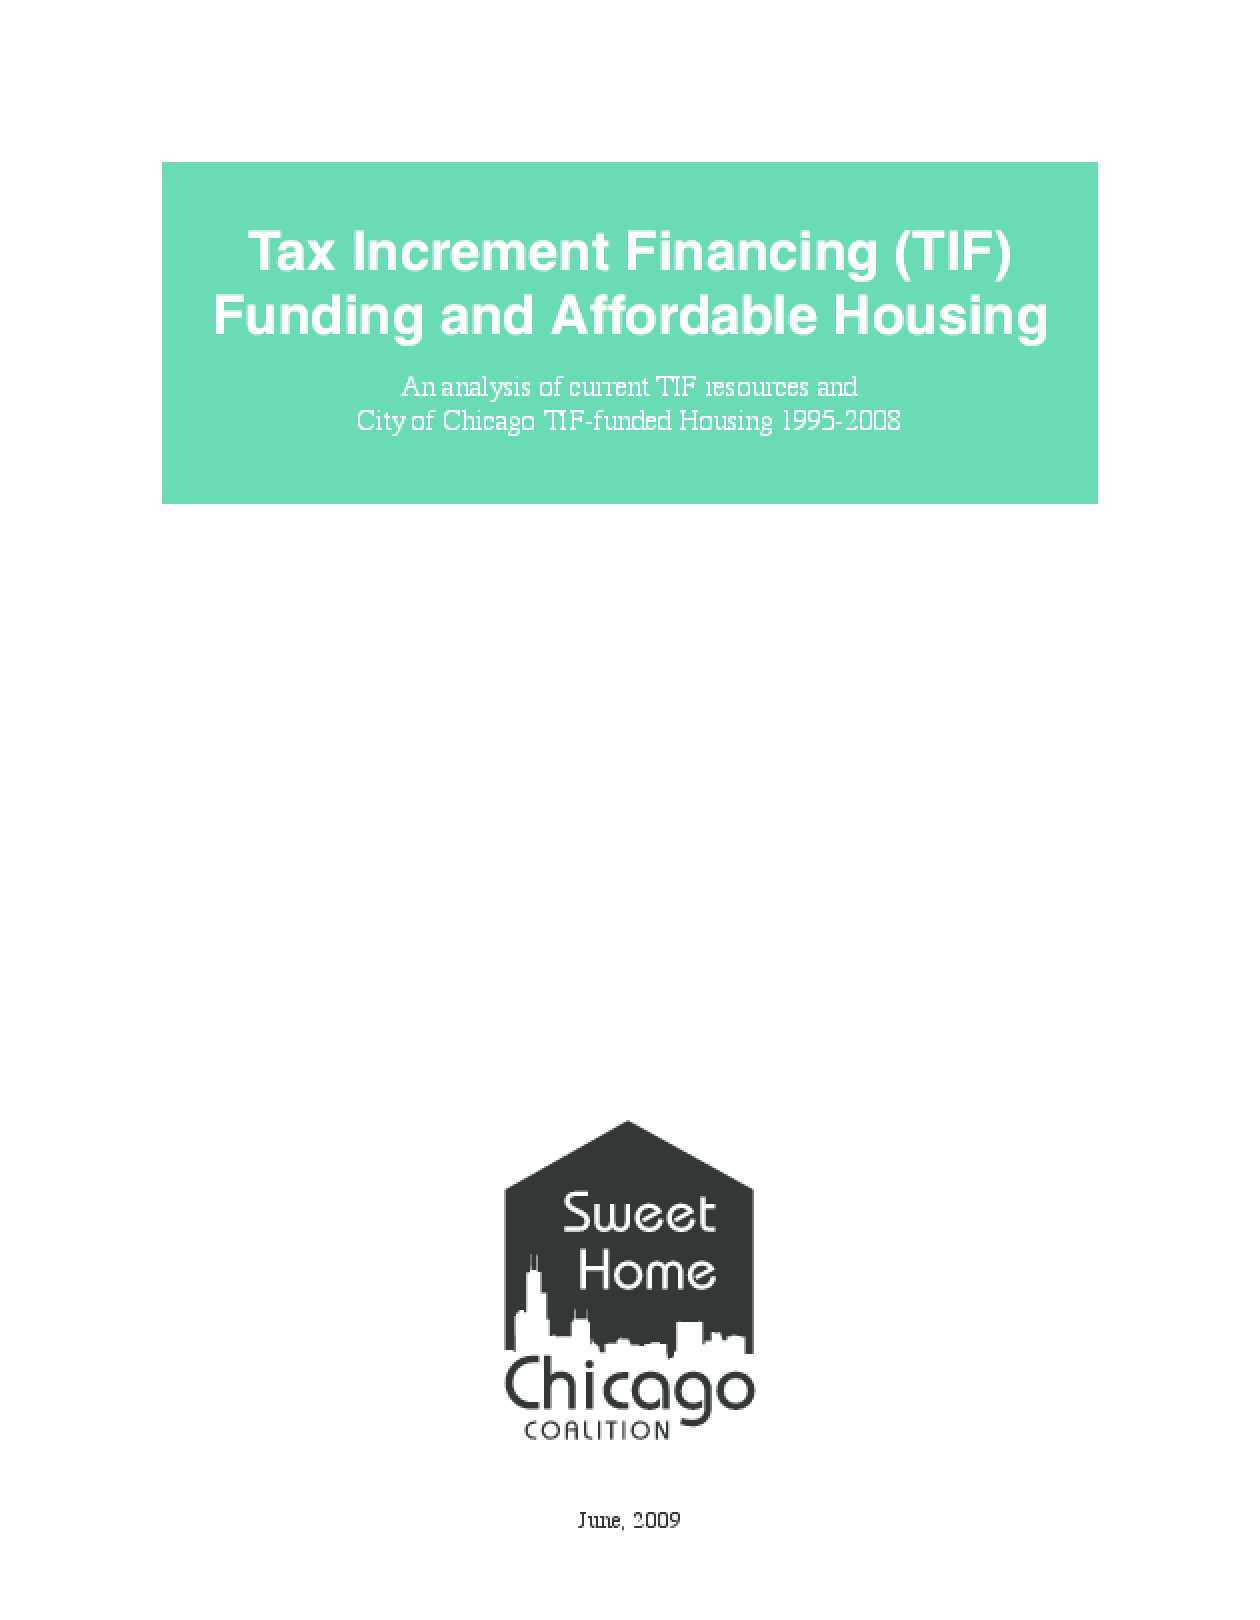 Tax Increment Financing (TIF) Funding and Affordable Housing: An analysis of current TIF resources and City of Chicago TIF-funded housing 1995-2008